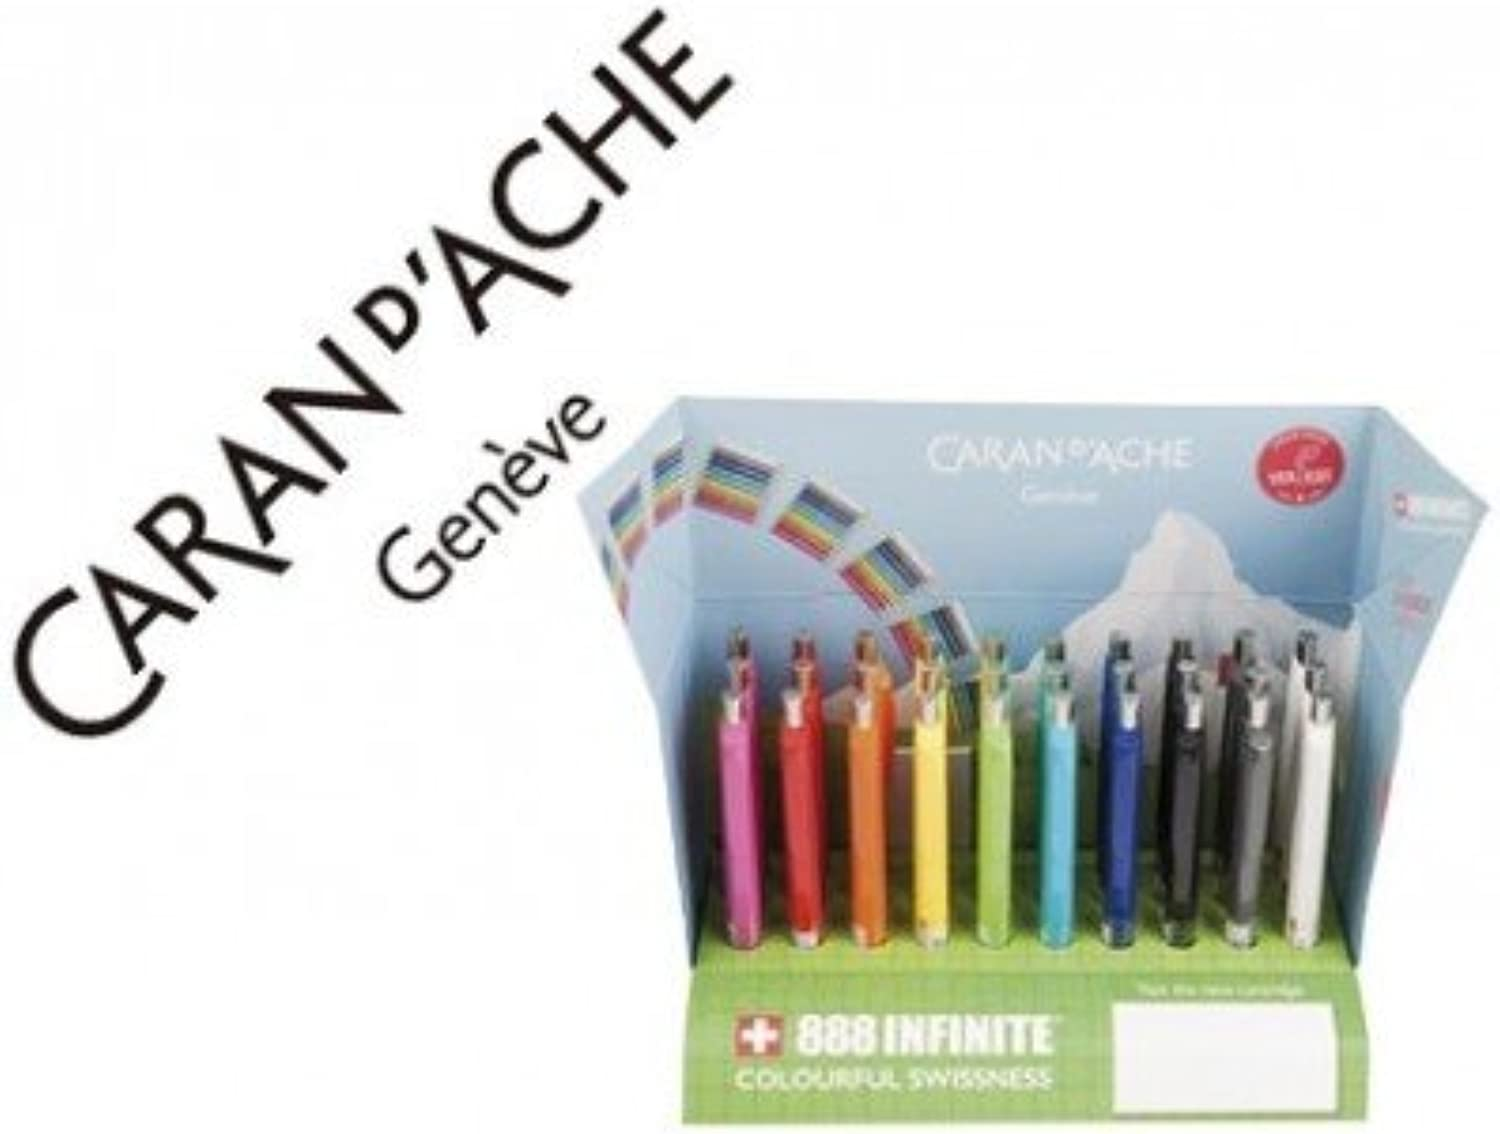 Caran d-Ache 888 Infinite Clip Retractable Ballpoint Pen 30pc (S) – Ballpoint Pens (Clip Retractable Ballpoint Pen, Multicolour, hexagonal, Plastic, Switzerland, 30 PC (S)) B0192CS512 | eine große Vielfalt